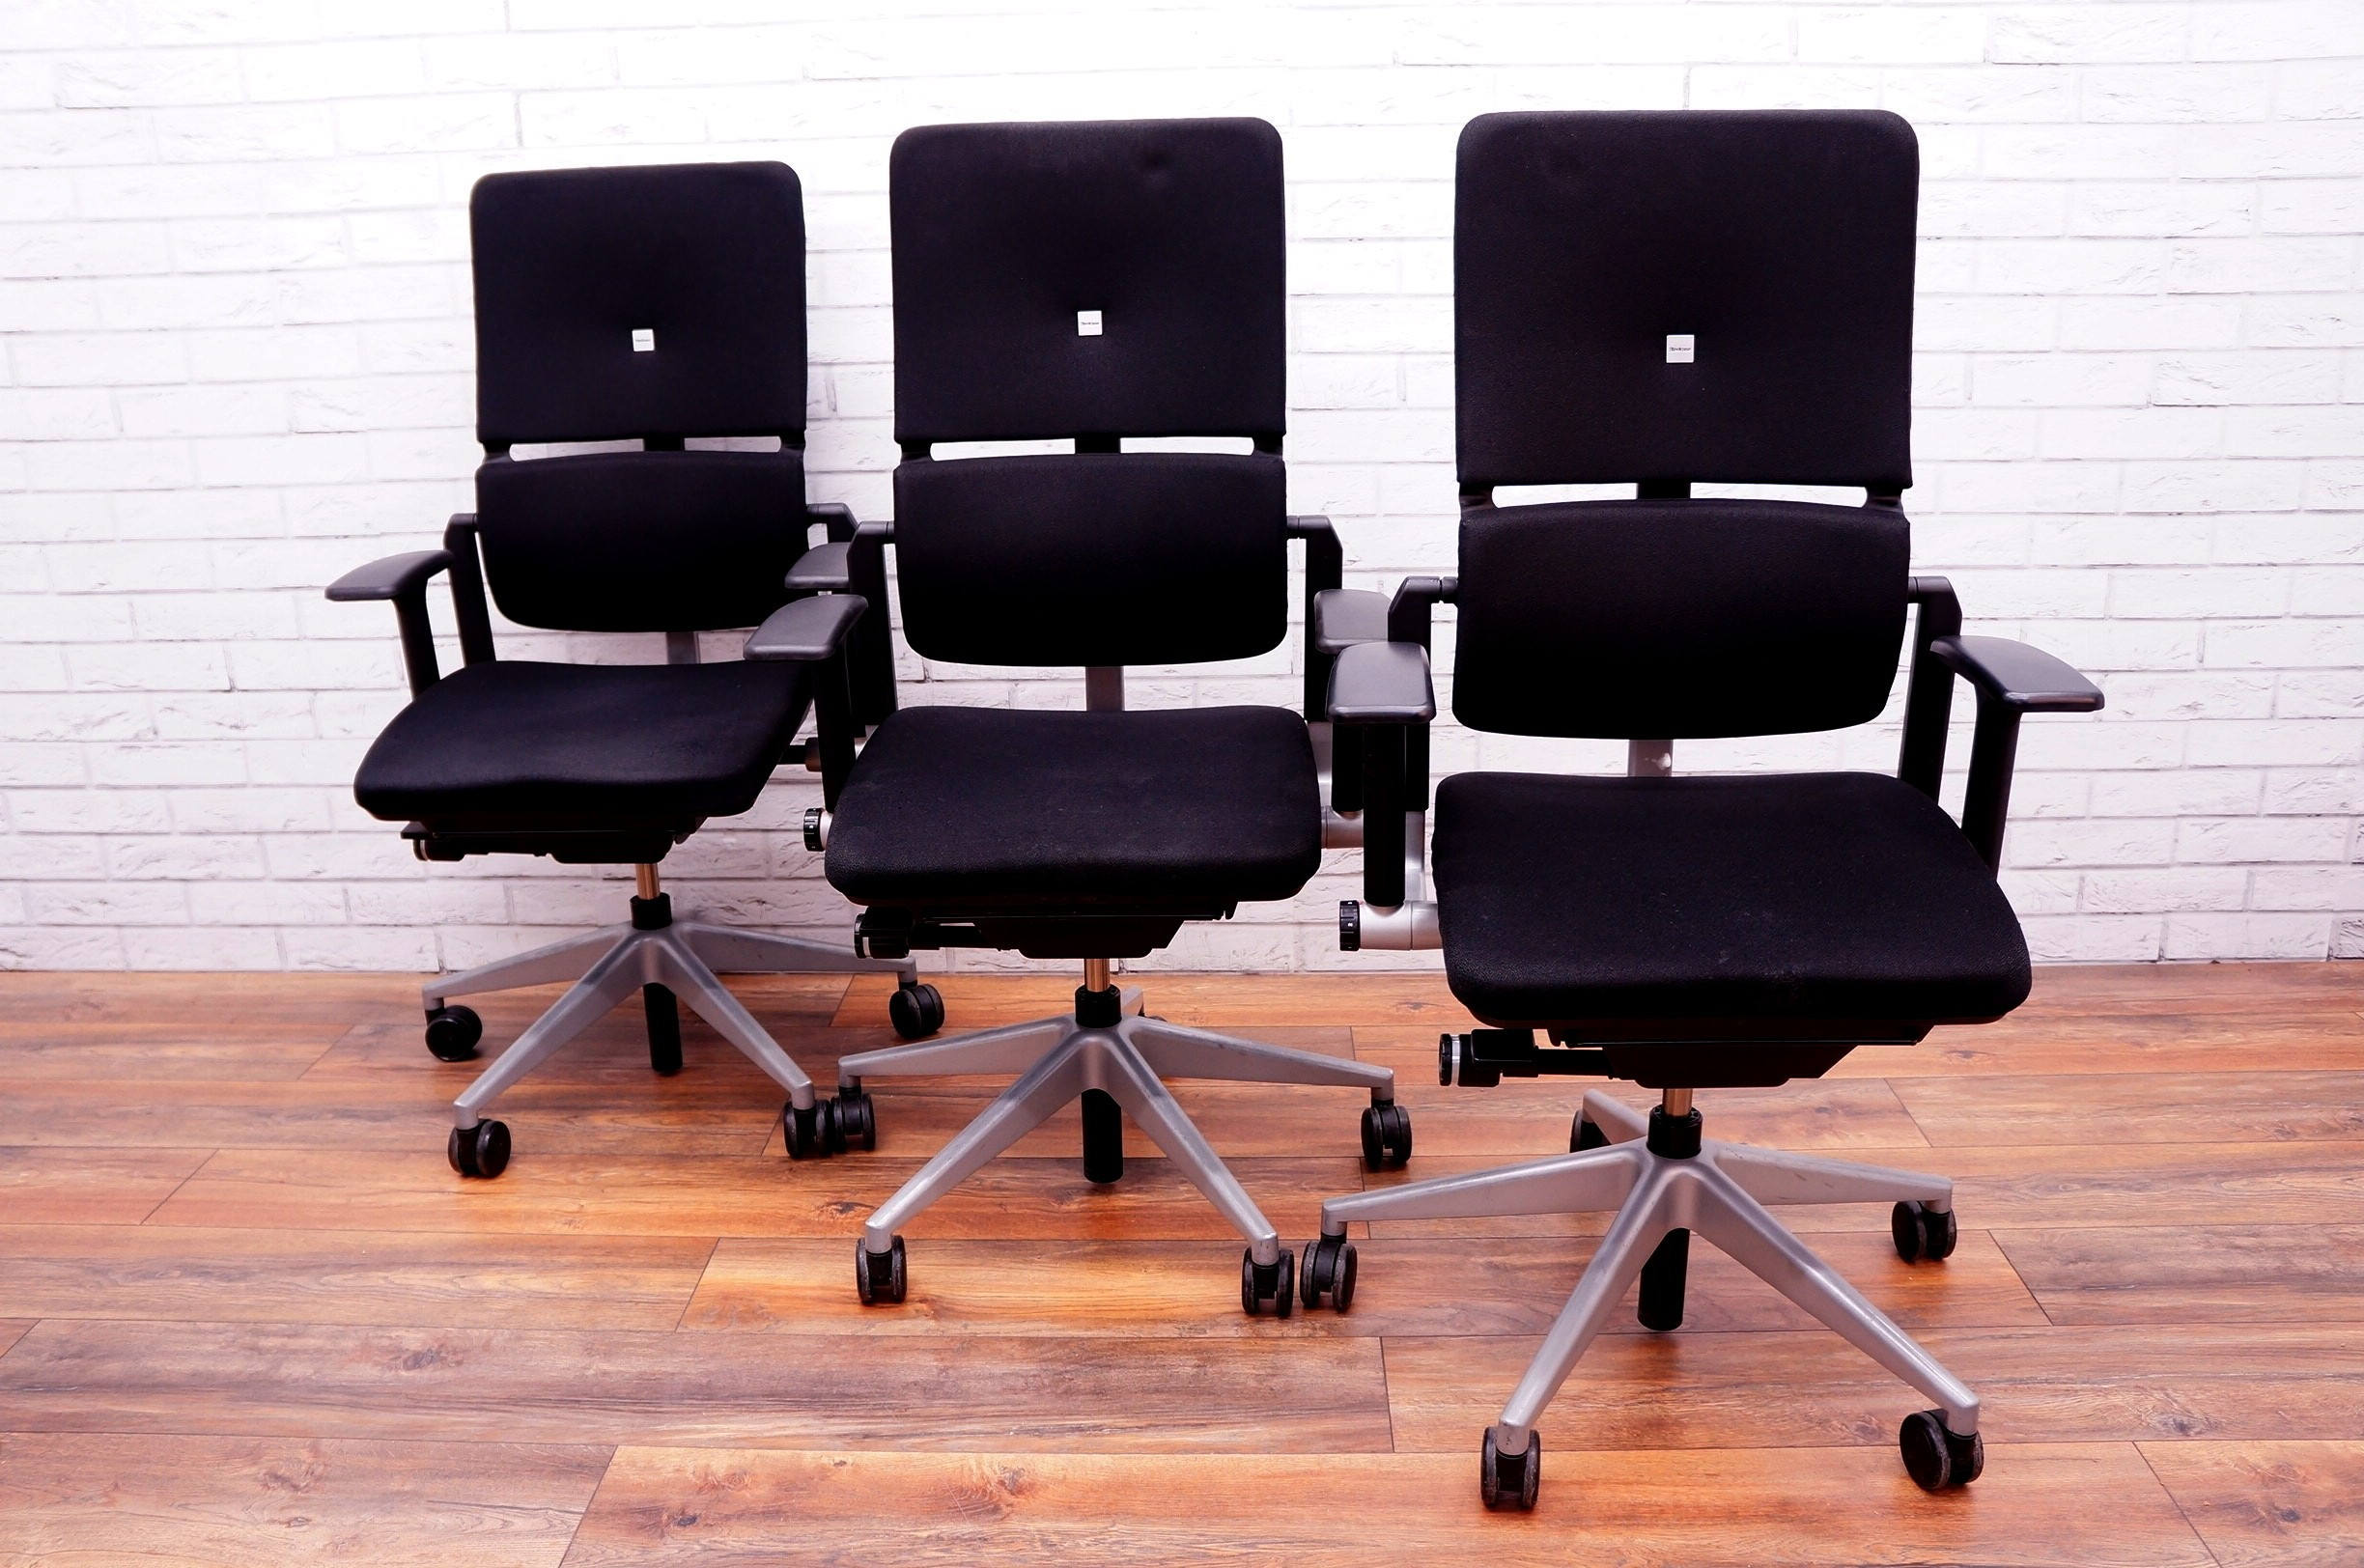 steelcase leap chair v2 review inada massage please expert event